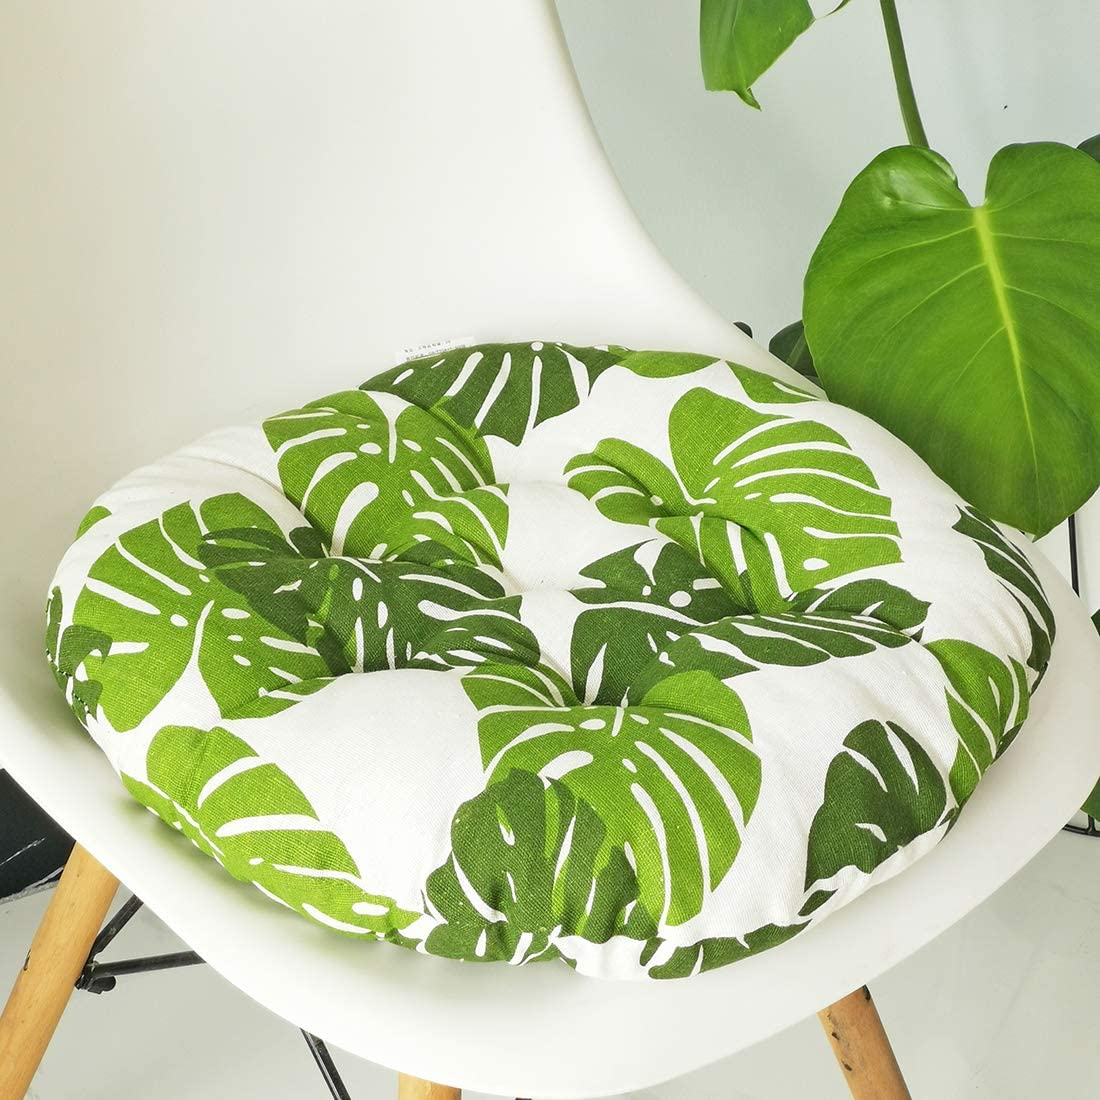 vctops Bohemian Soft Round Chair Pad Garden Patio Home Kitchen Office Seat Cushion Leaf Diameter 16